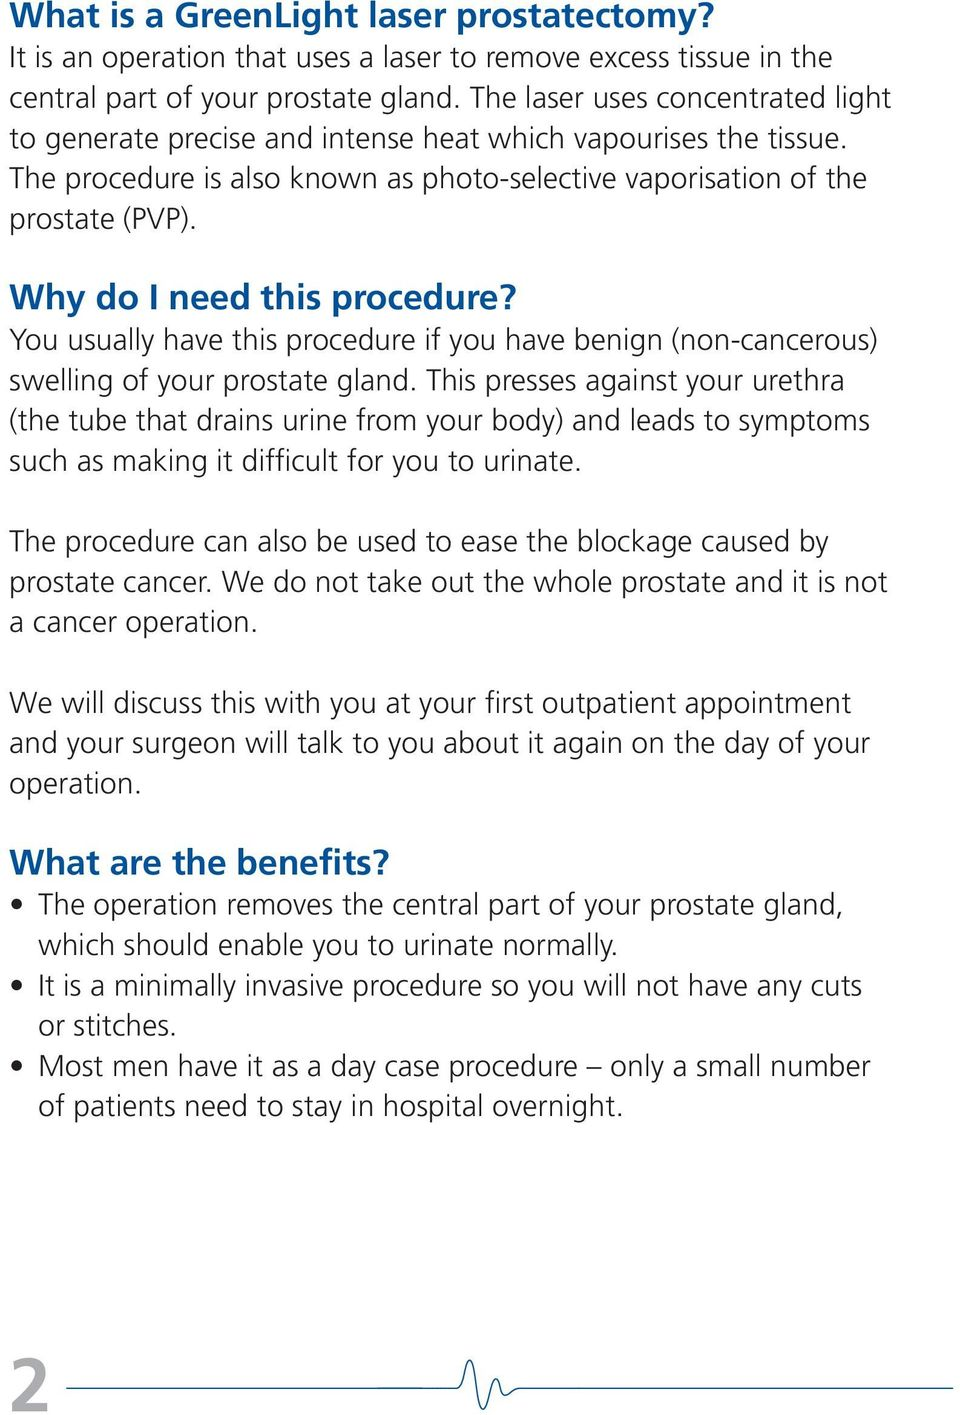 Why do I need this procedure? You usually have this procedure if you have benign (non-cancerous) swelling of your prostate gland.